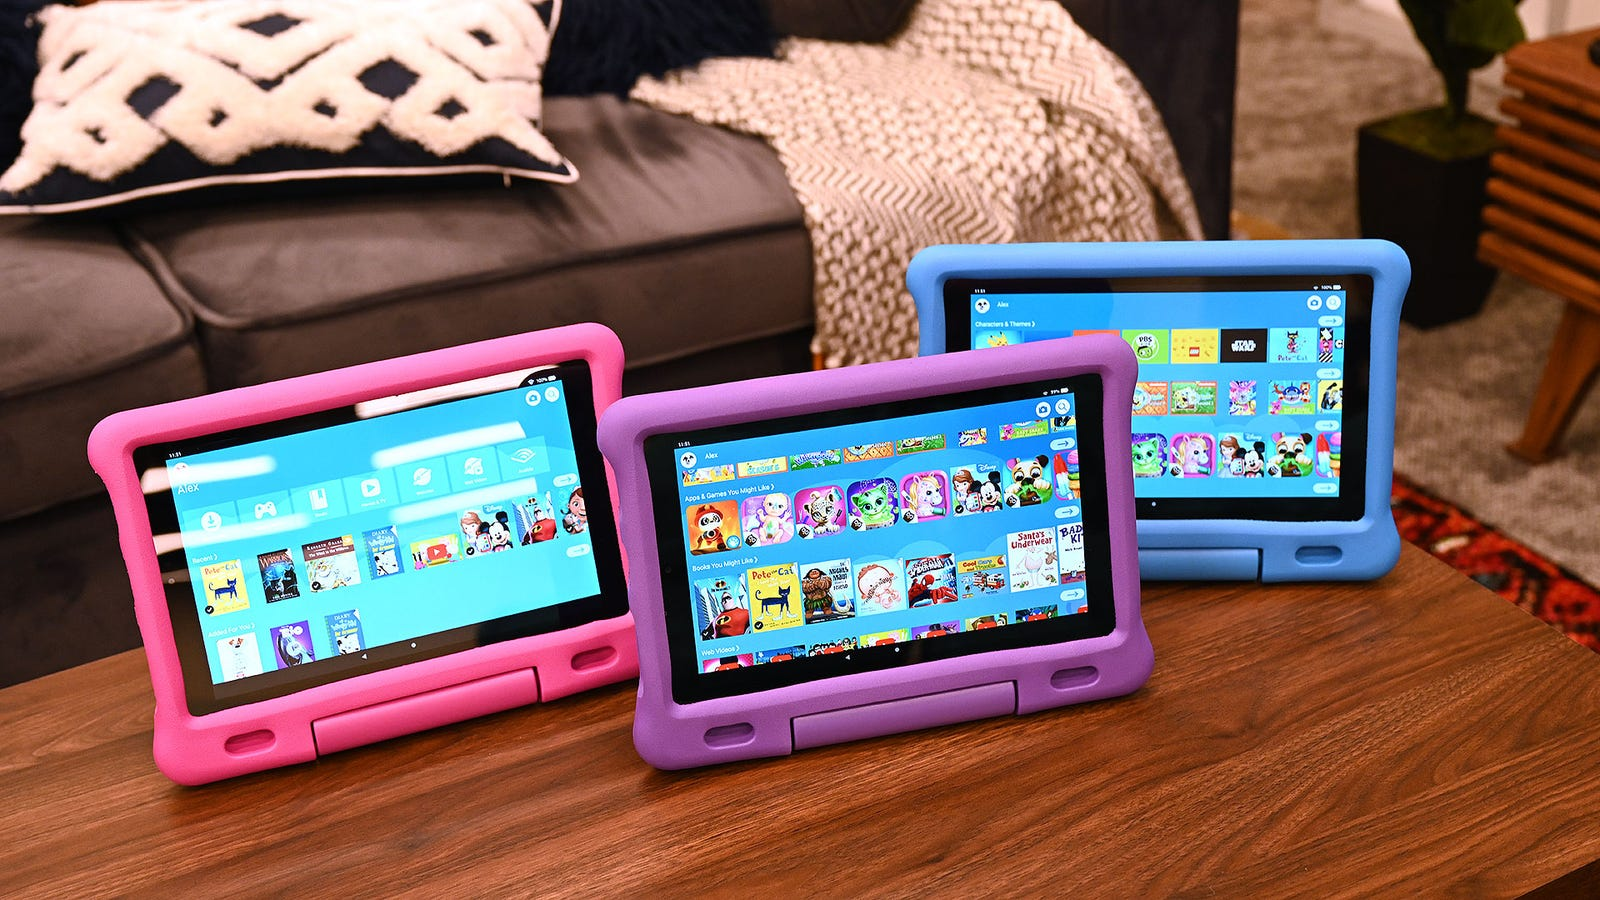 Here's the new Fire HD 10 Kids Edition.